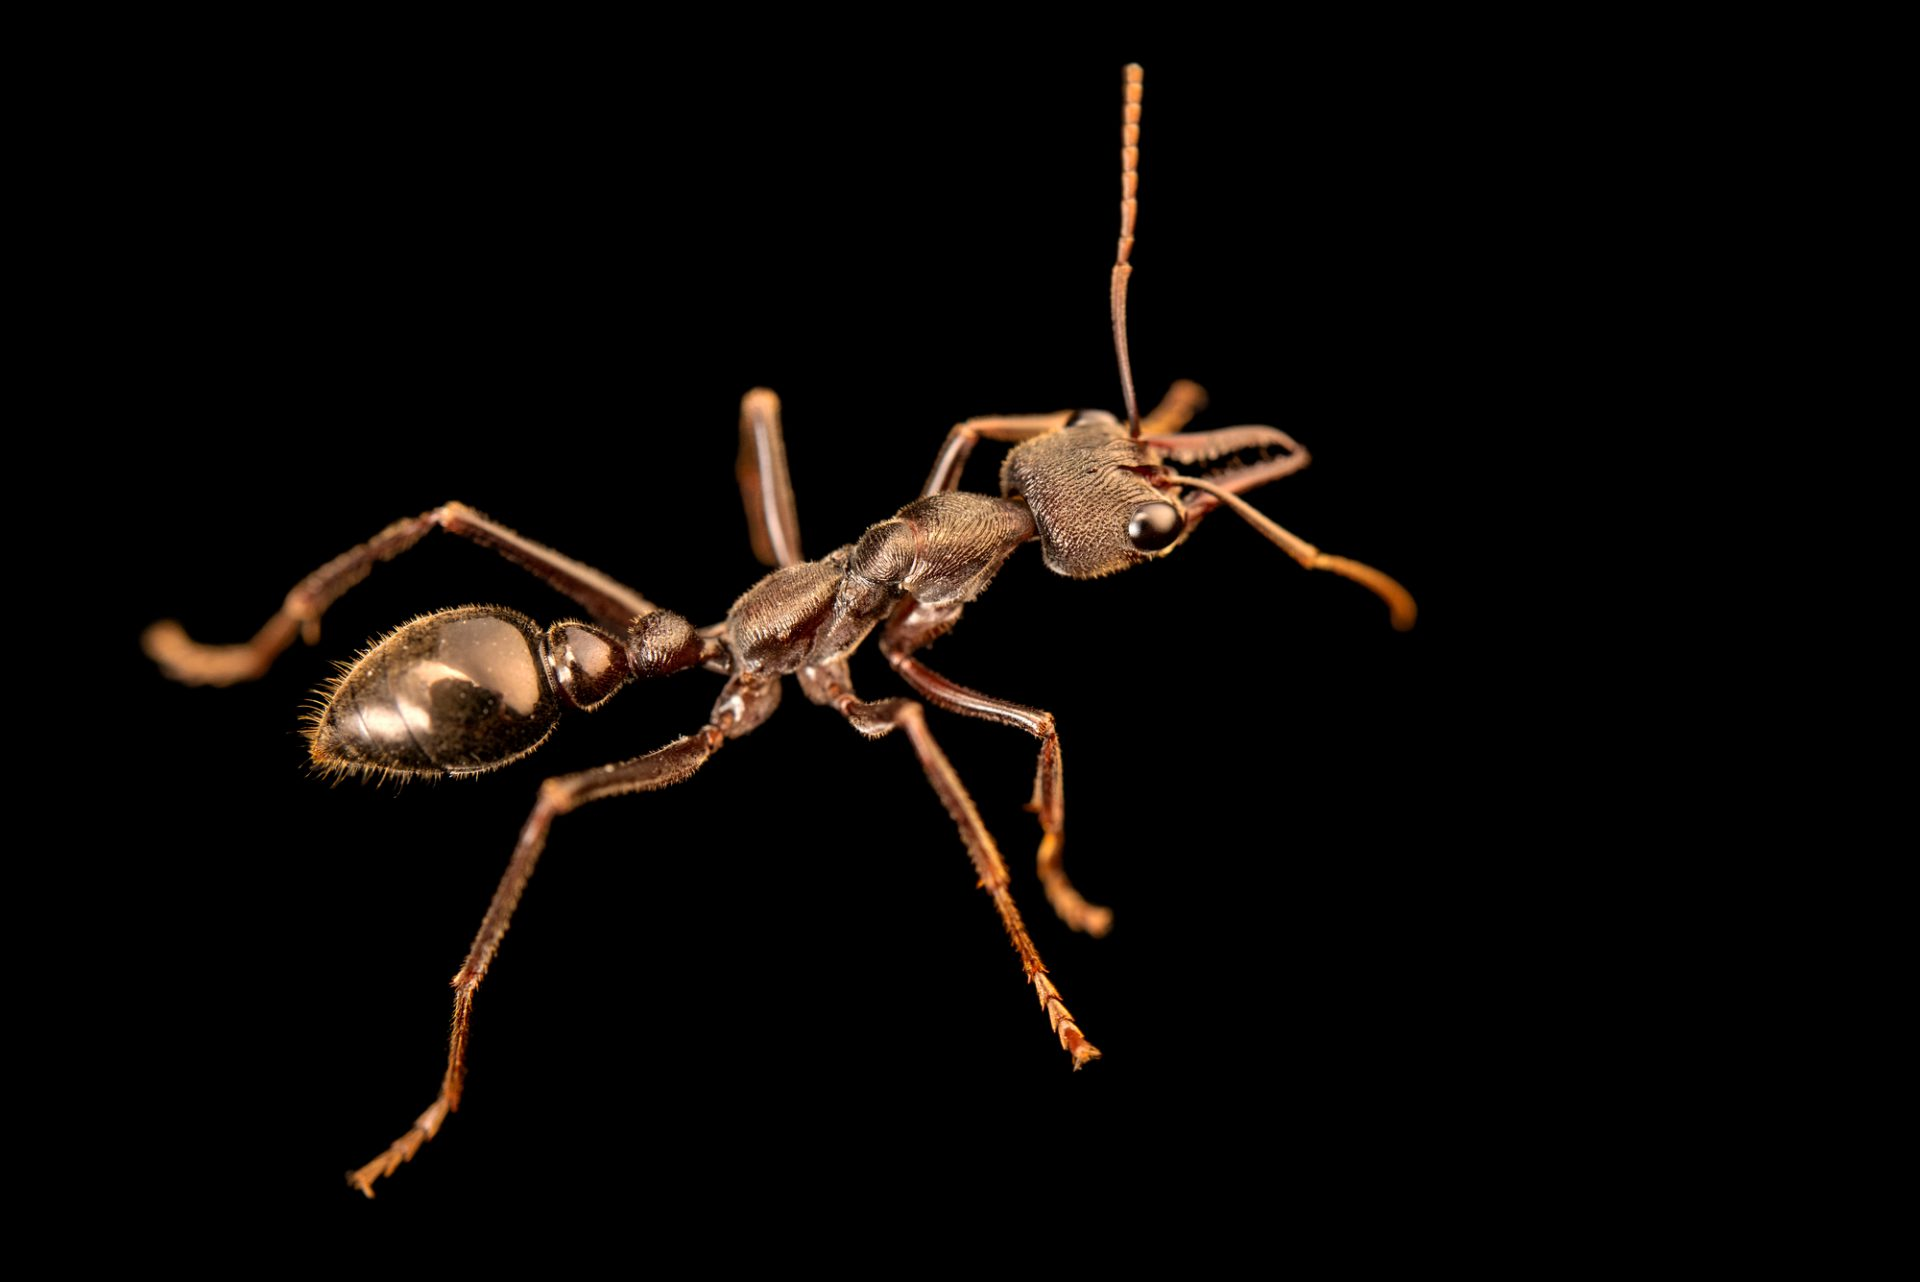 Photo: Bull ant (Myrmecia sp.) from the Melbourne Museum